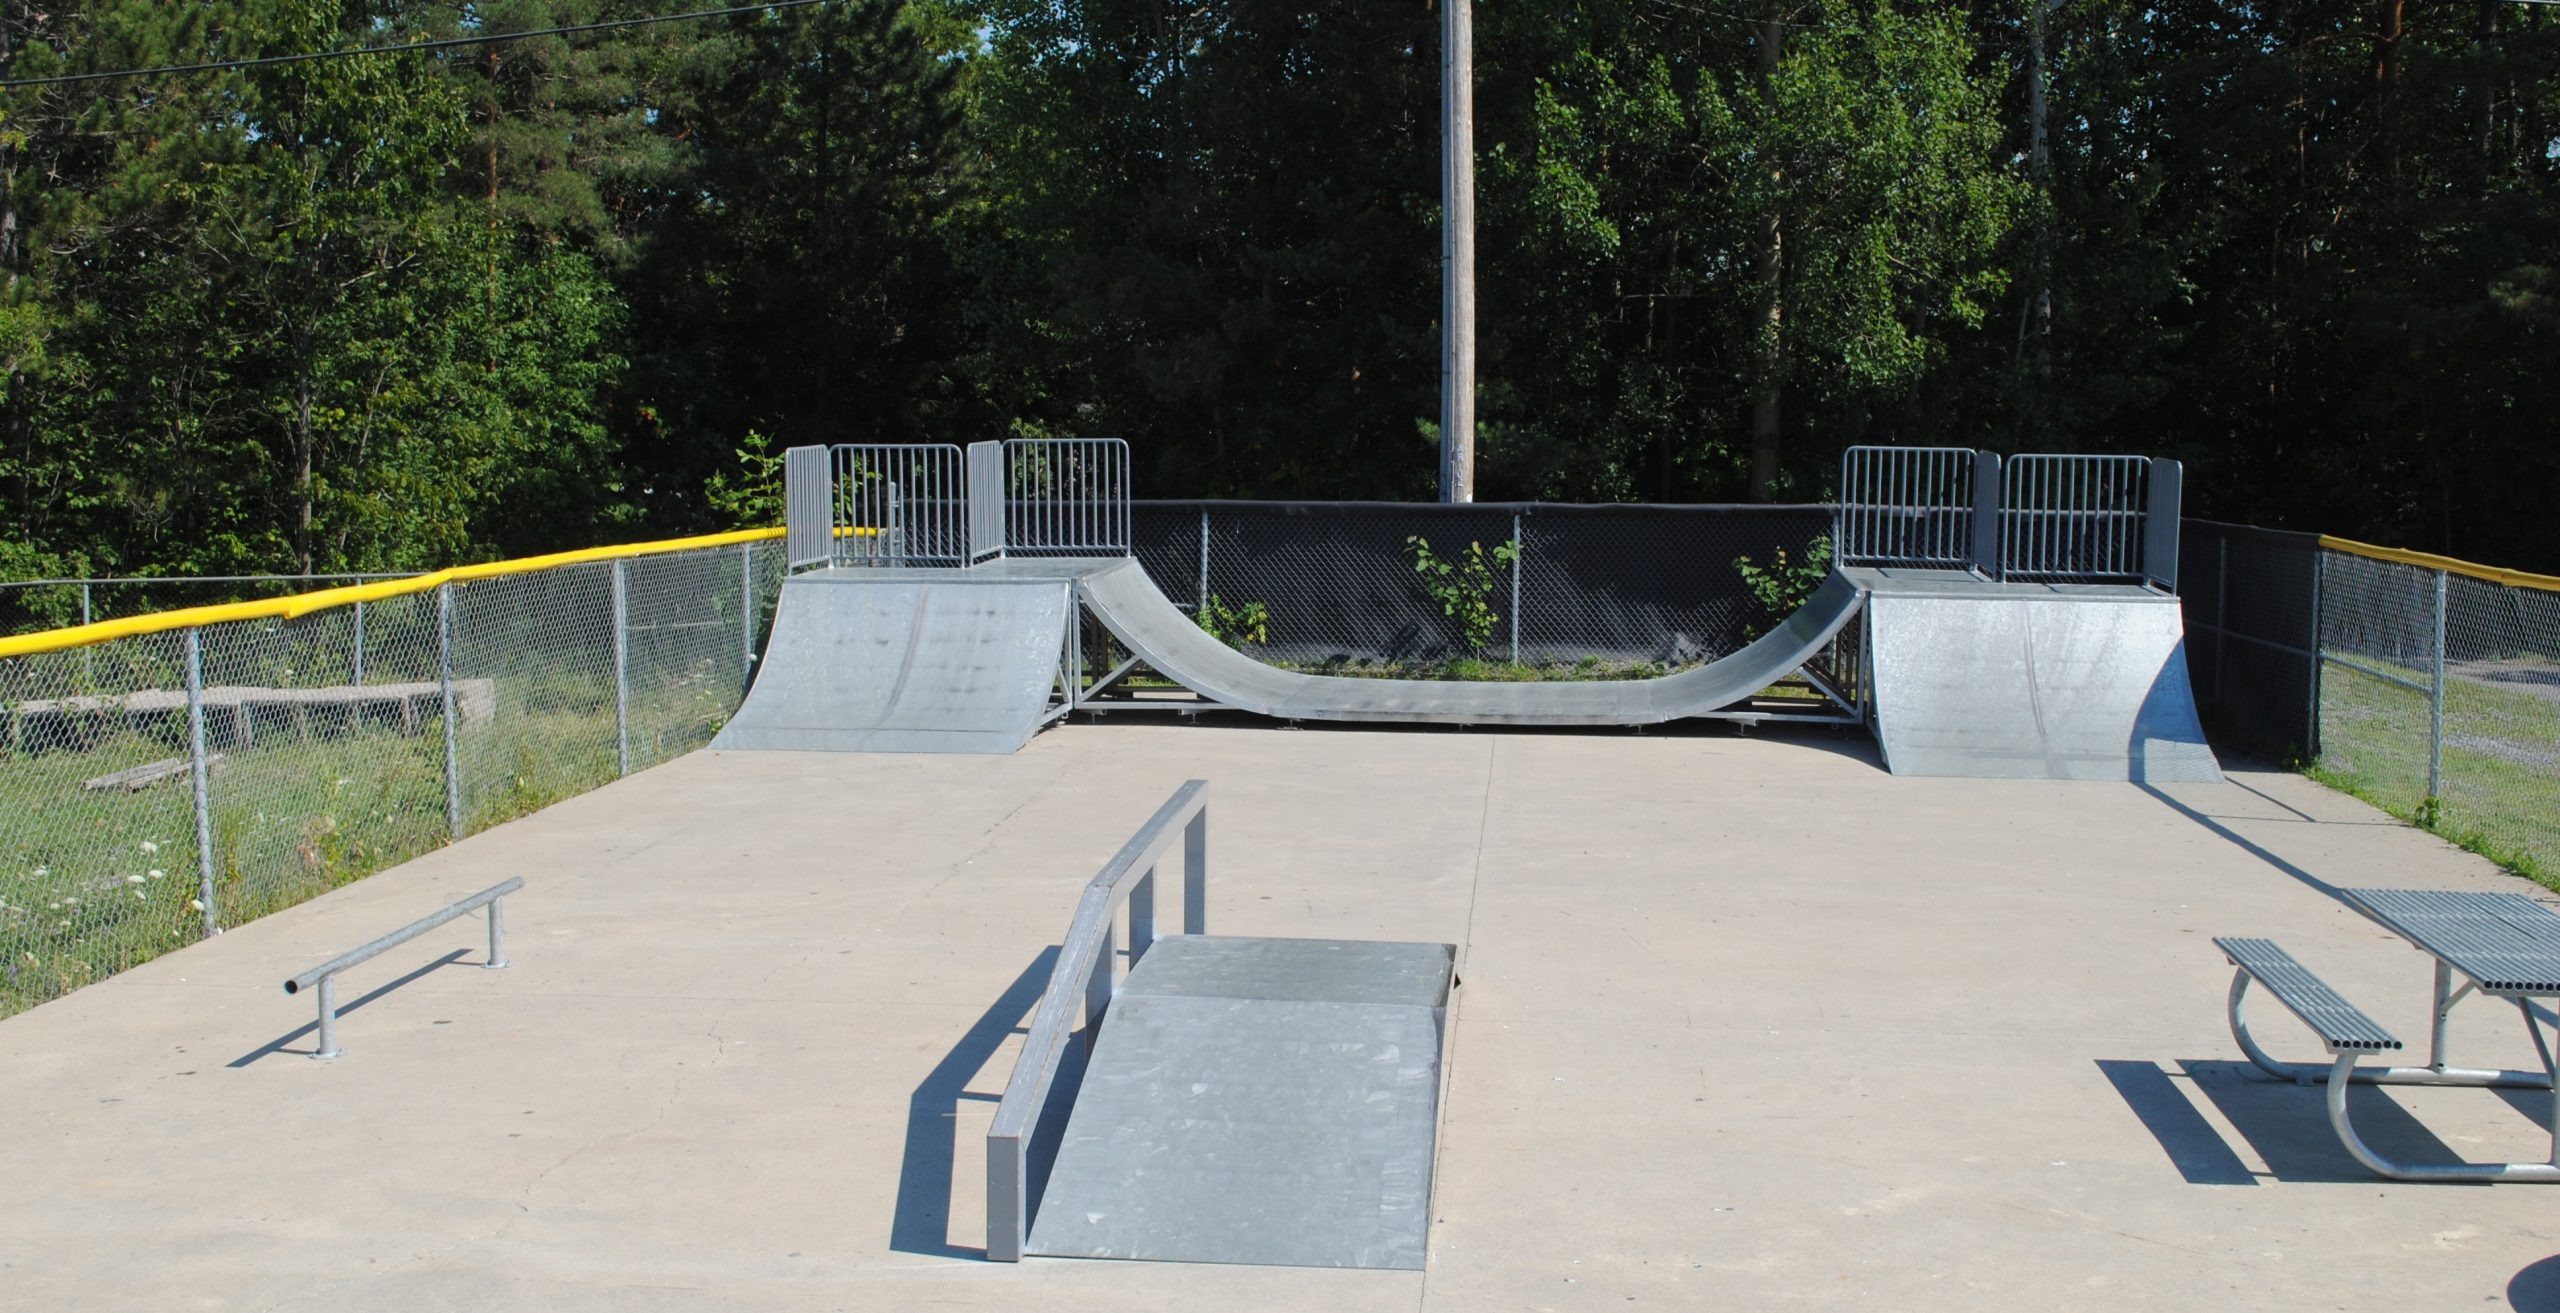 PlayKSL_Skatepark-scaled